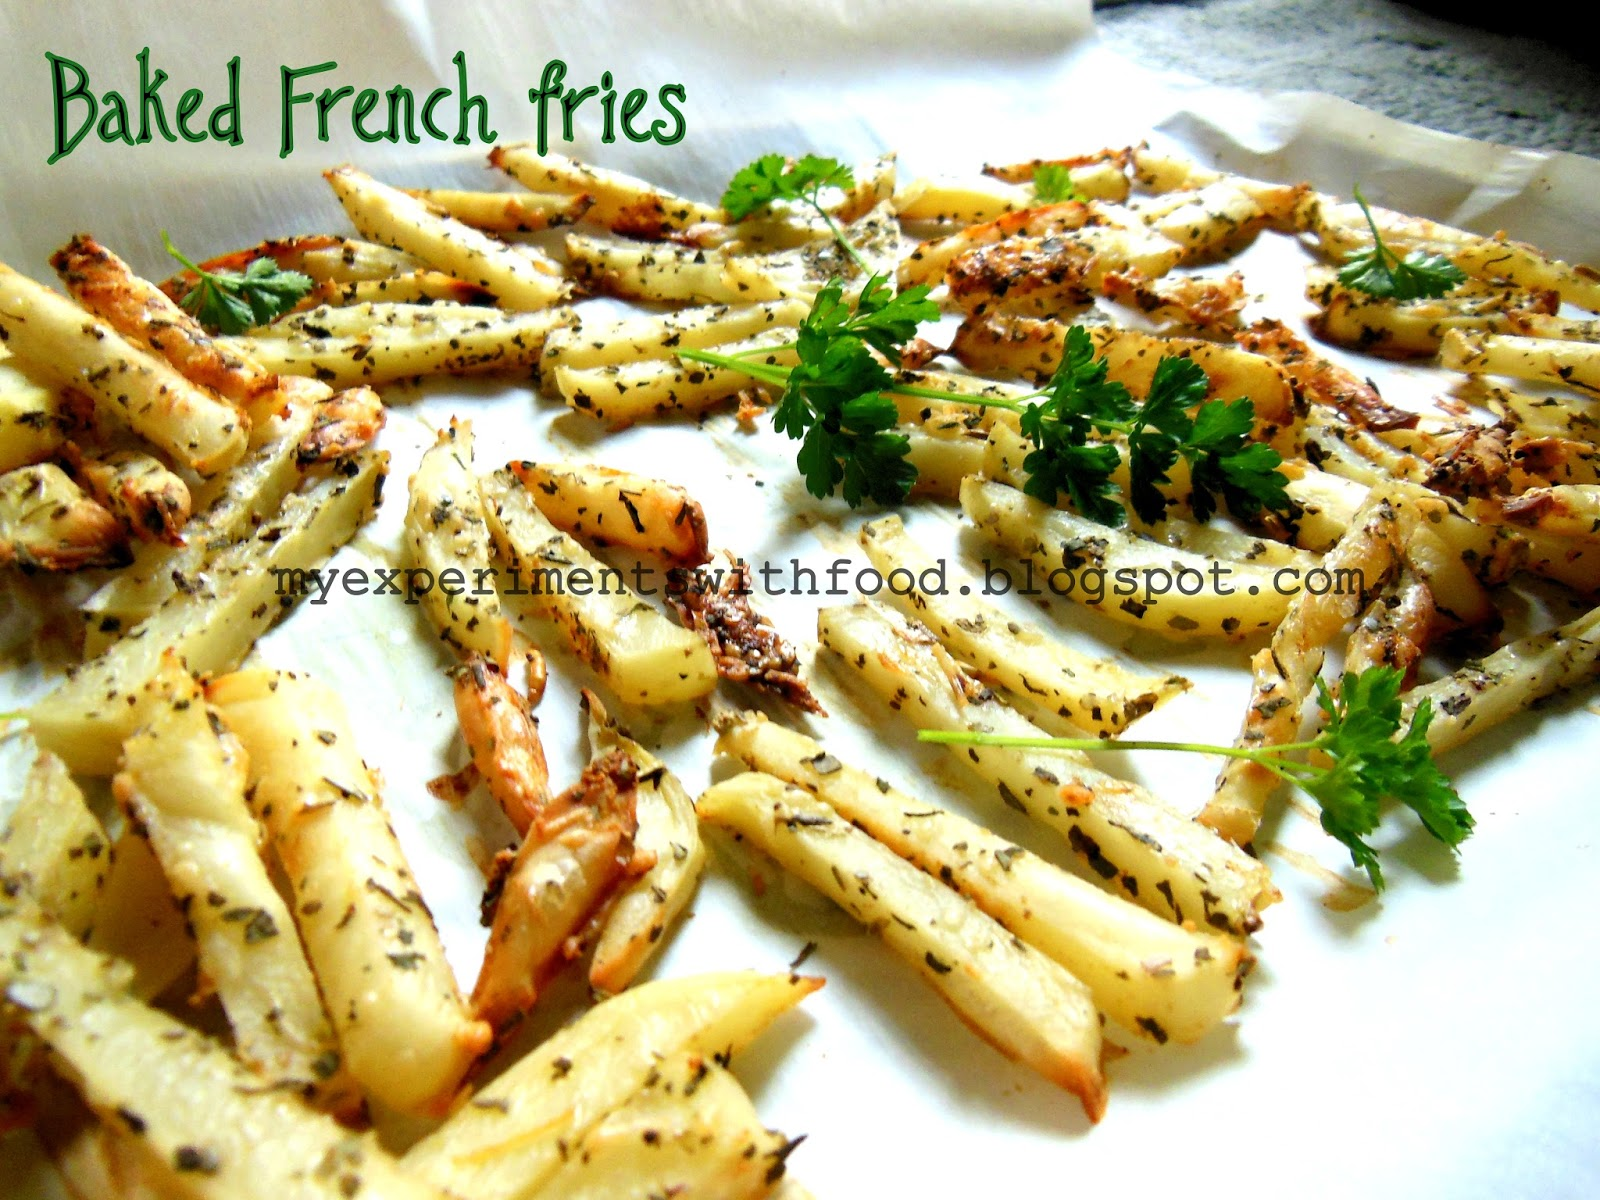 To make the fries crispy, just cut them to thin slices, which helps ...